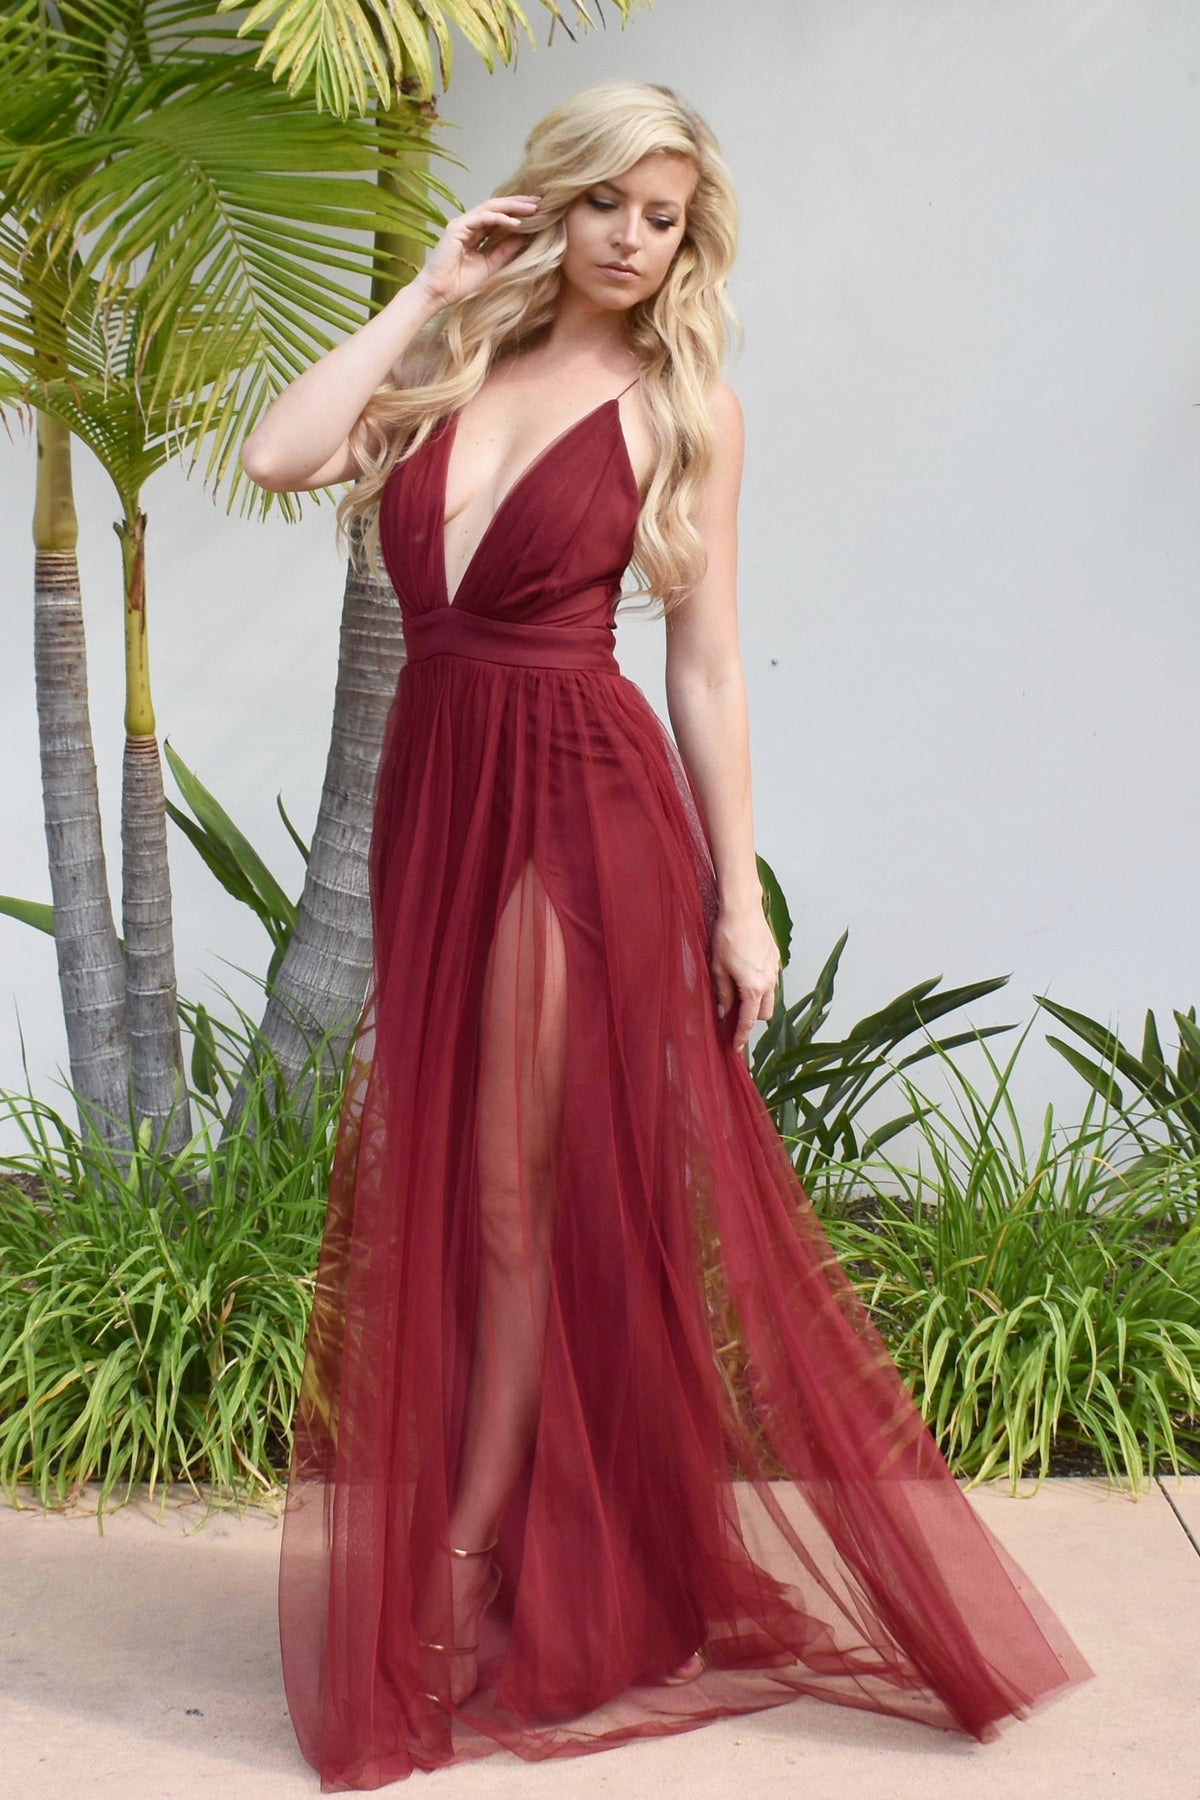 Maui gown red burgundy tulle prom dress with double slits